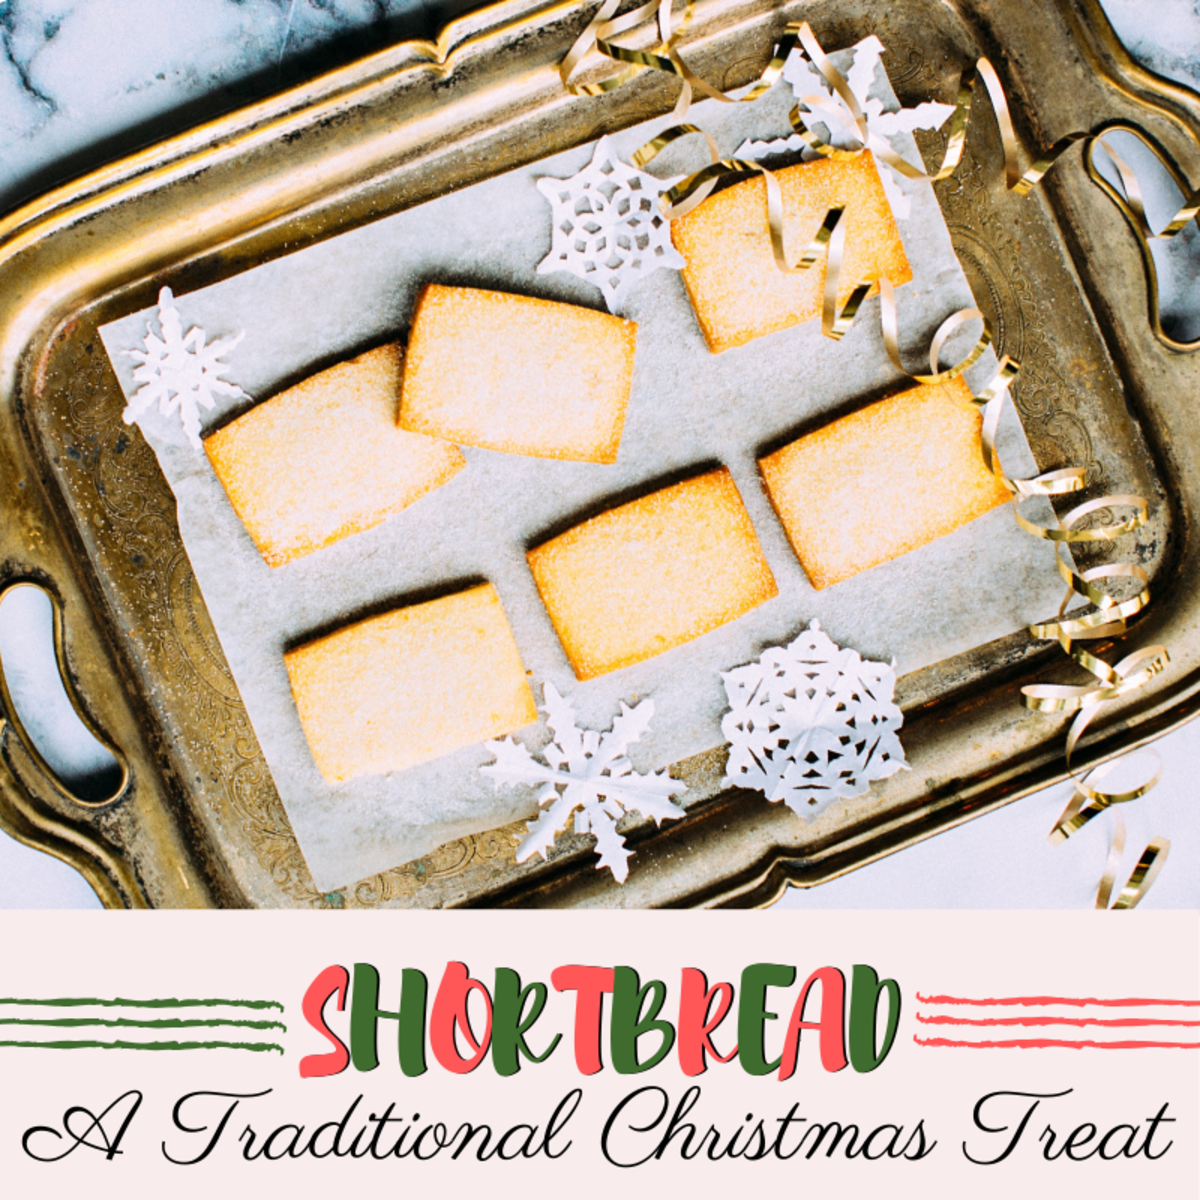 Shortbread is a simple but well-loved treat that has long been associated with Christmastime.